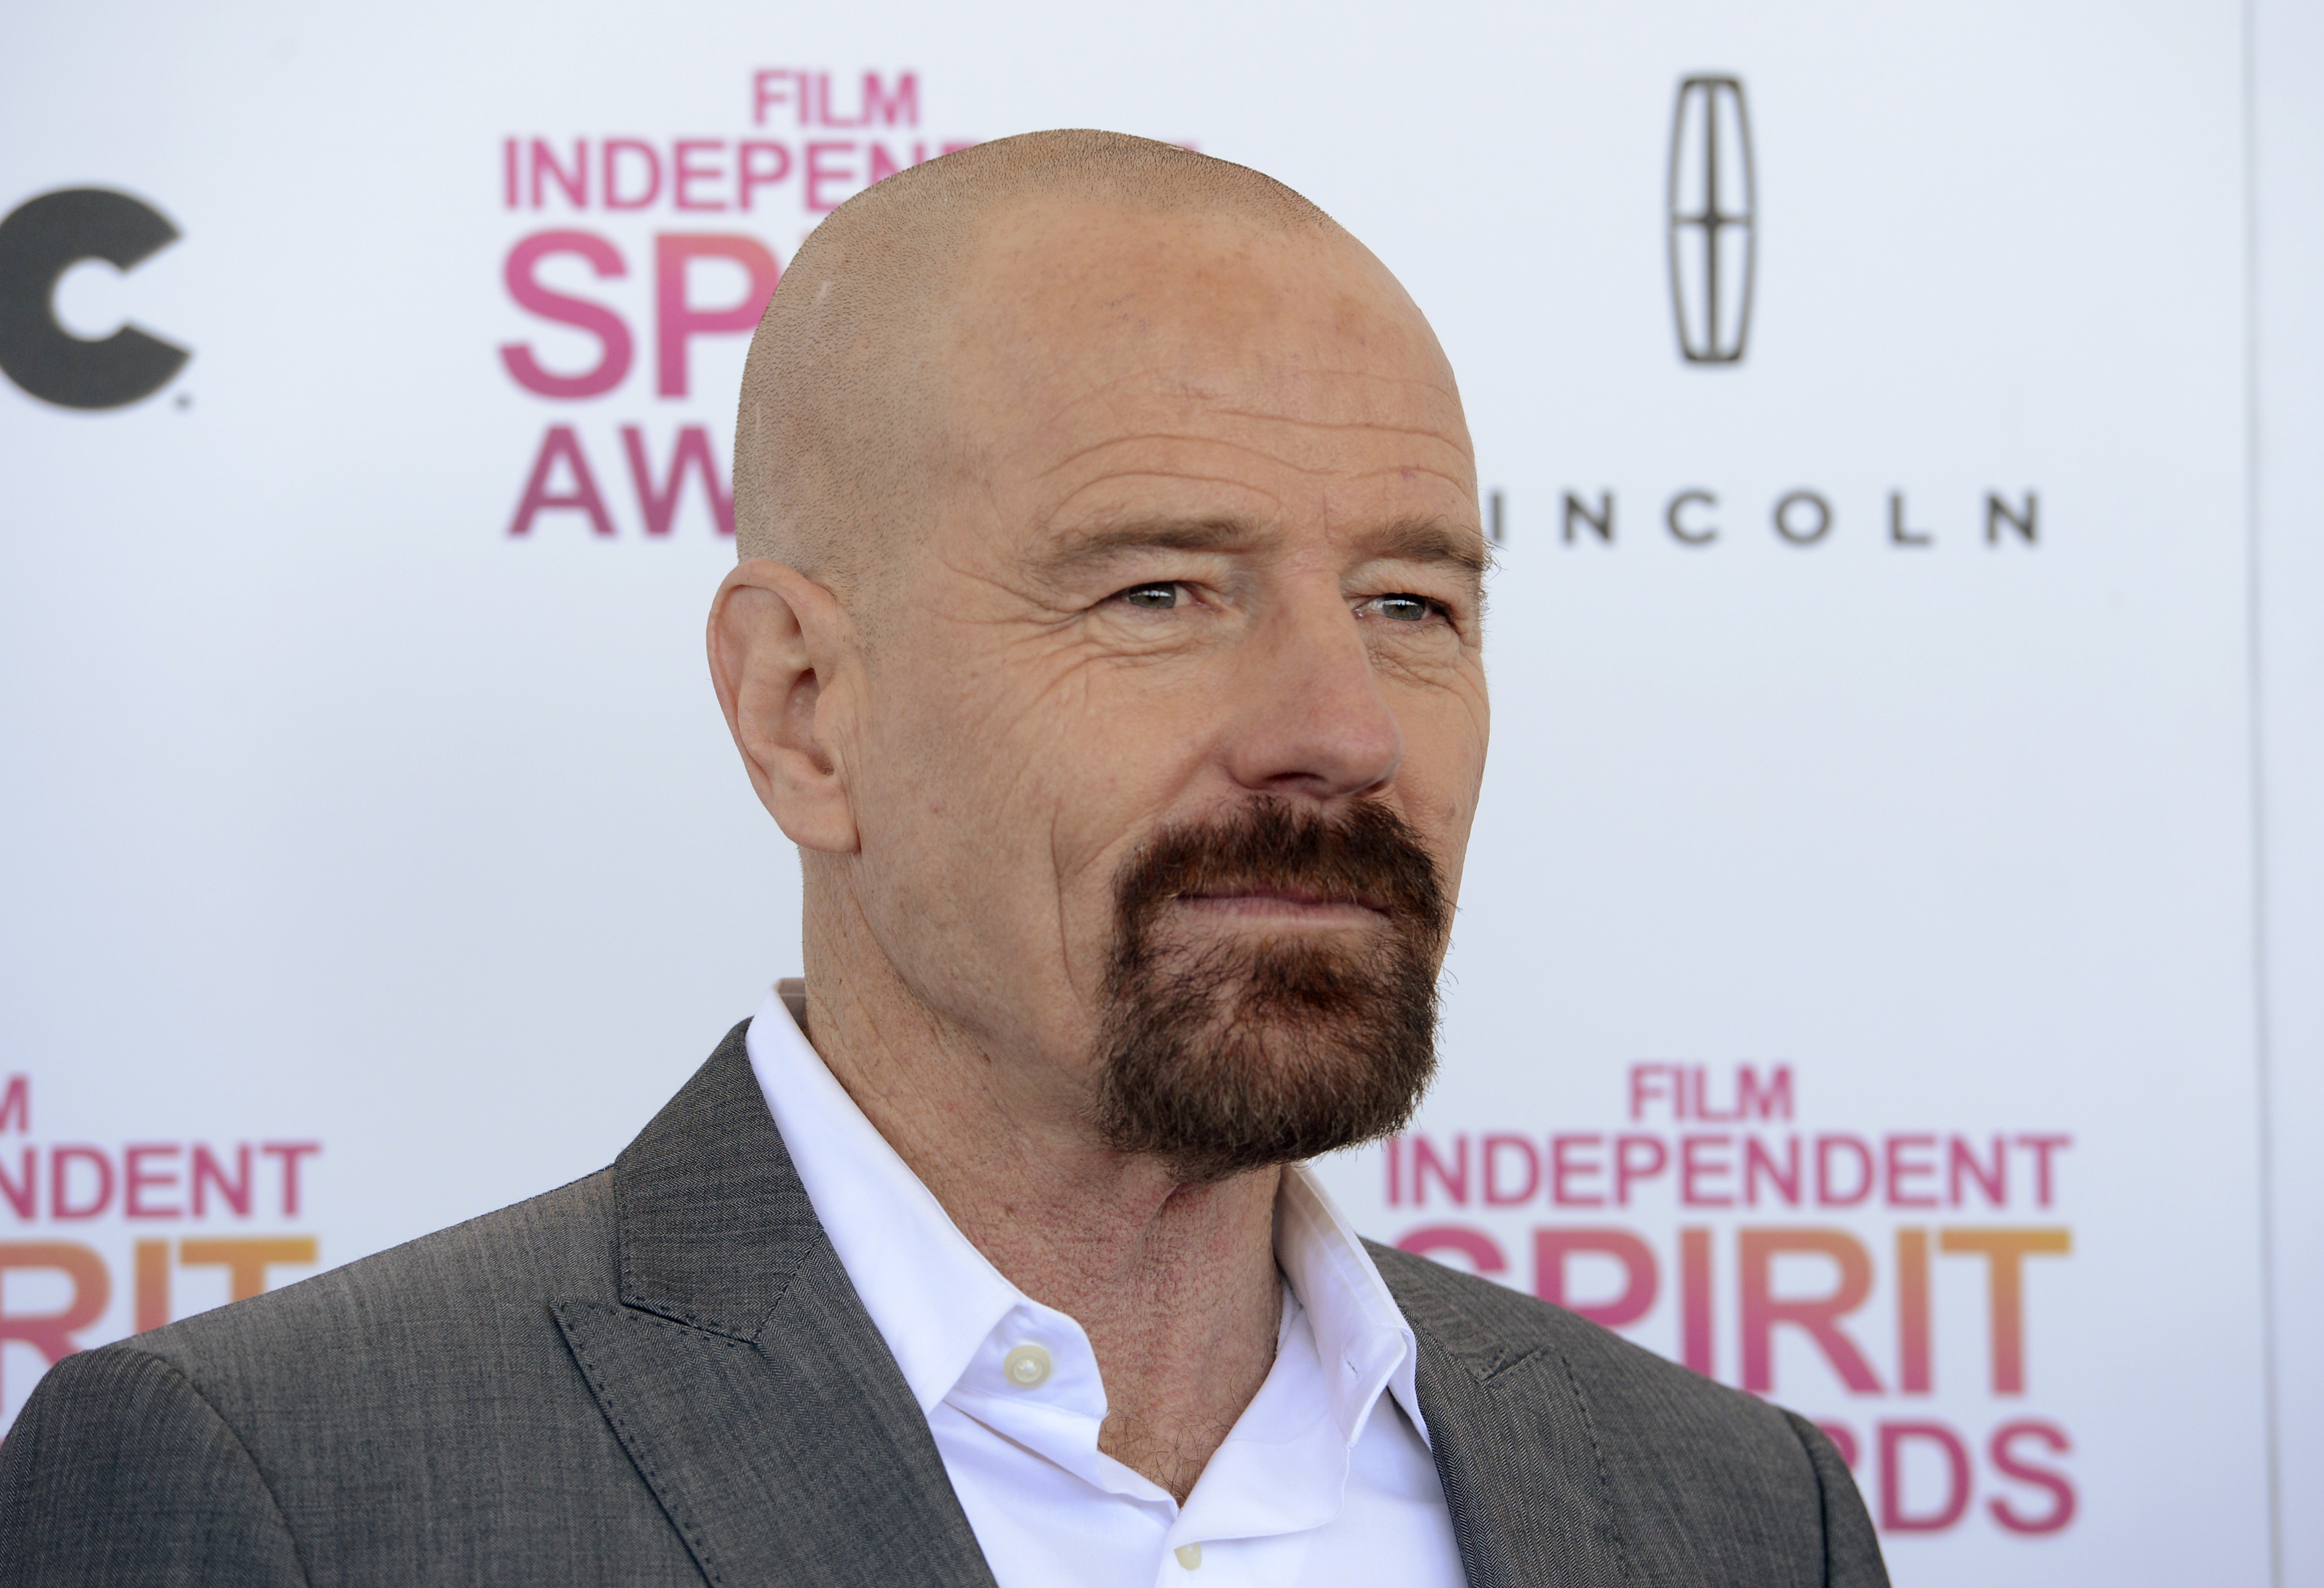 Actor Bryan Cranston arrives at the 2013 Film Independent Spirit Awards in Santa Monica